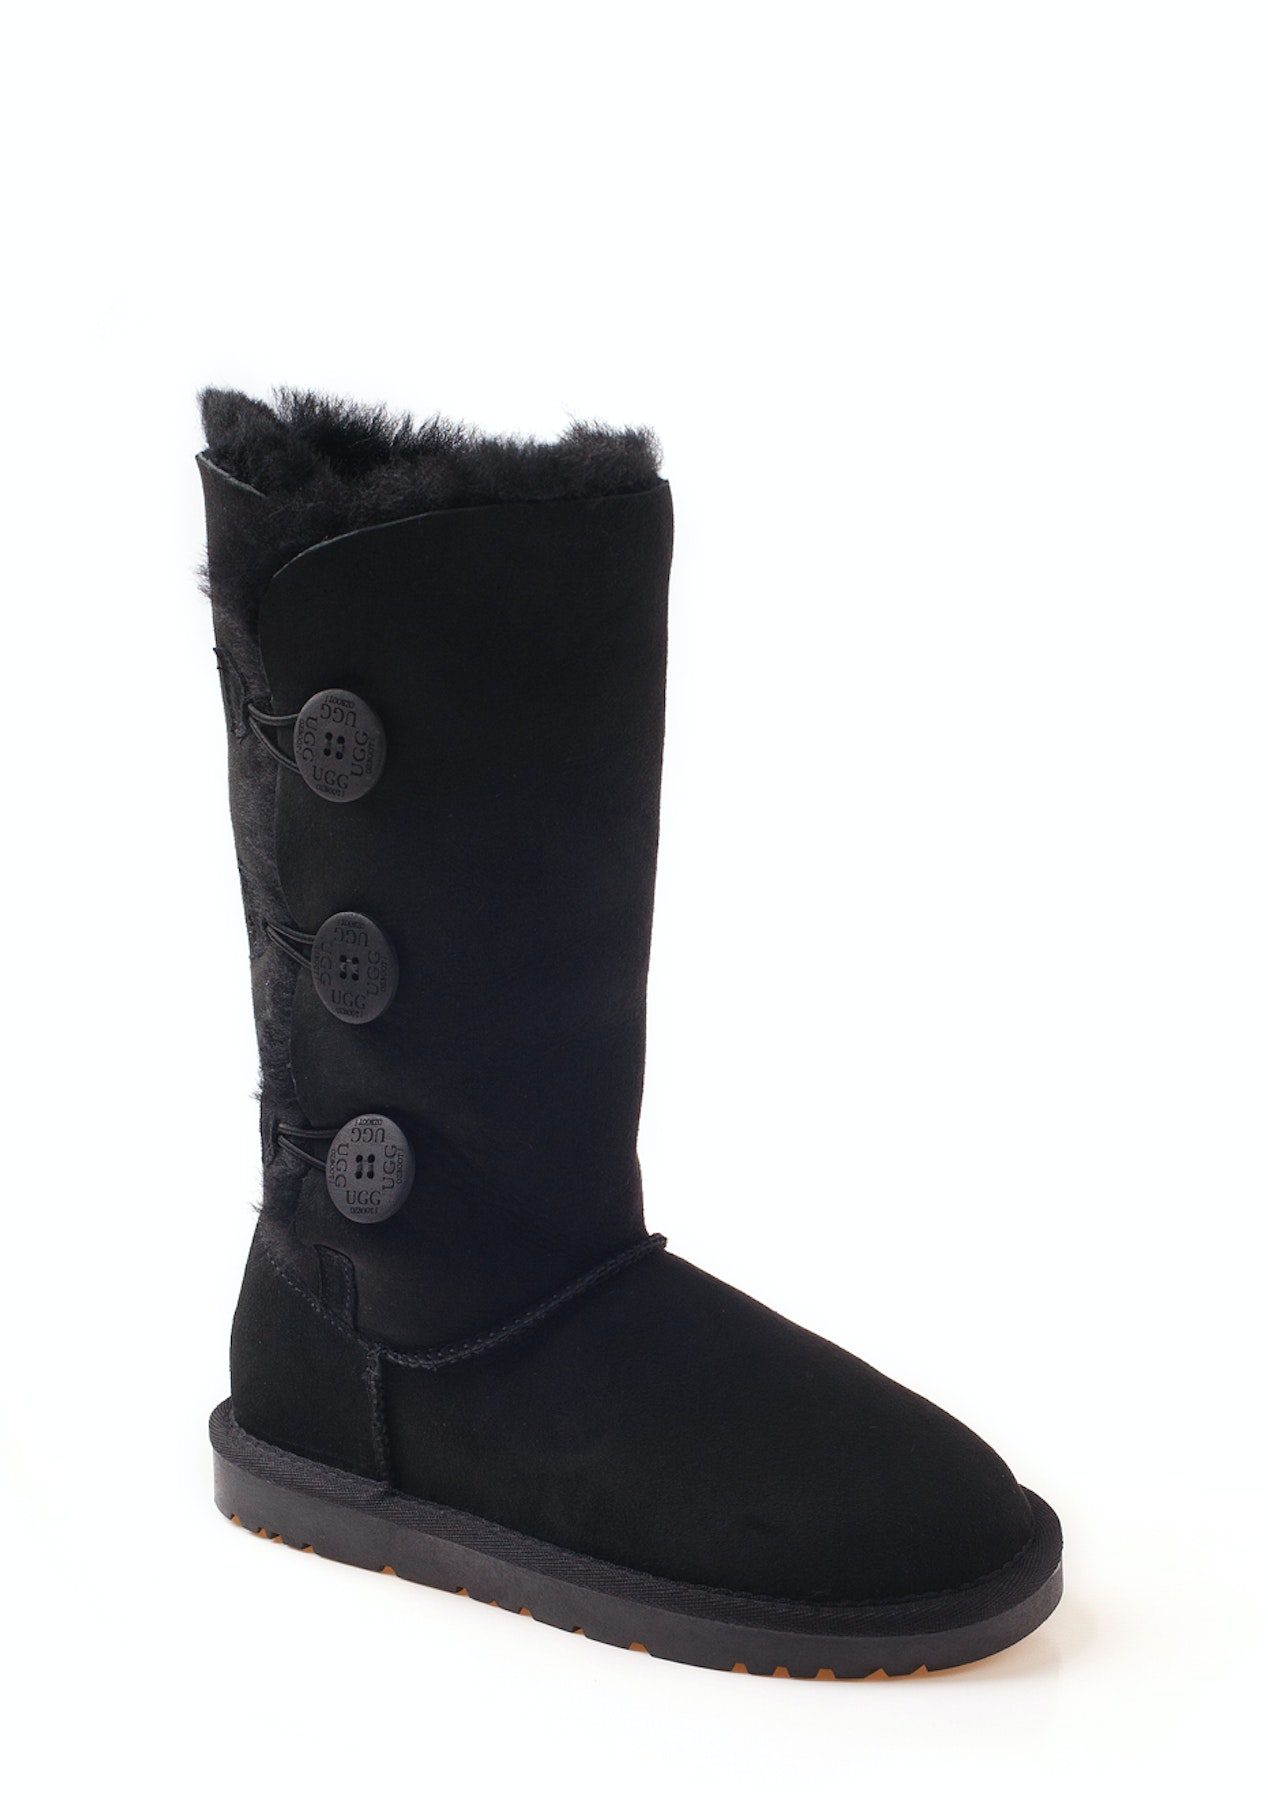 570cf1a0caa Ozwear - Ugg Classic 3 Button Boots (Water Resistant) - Black